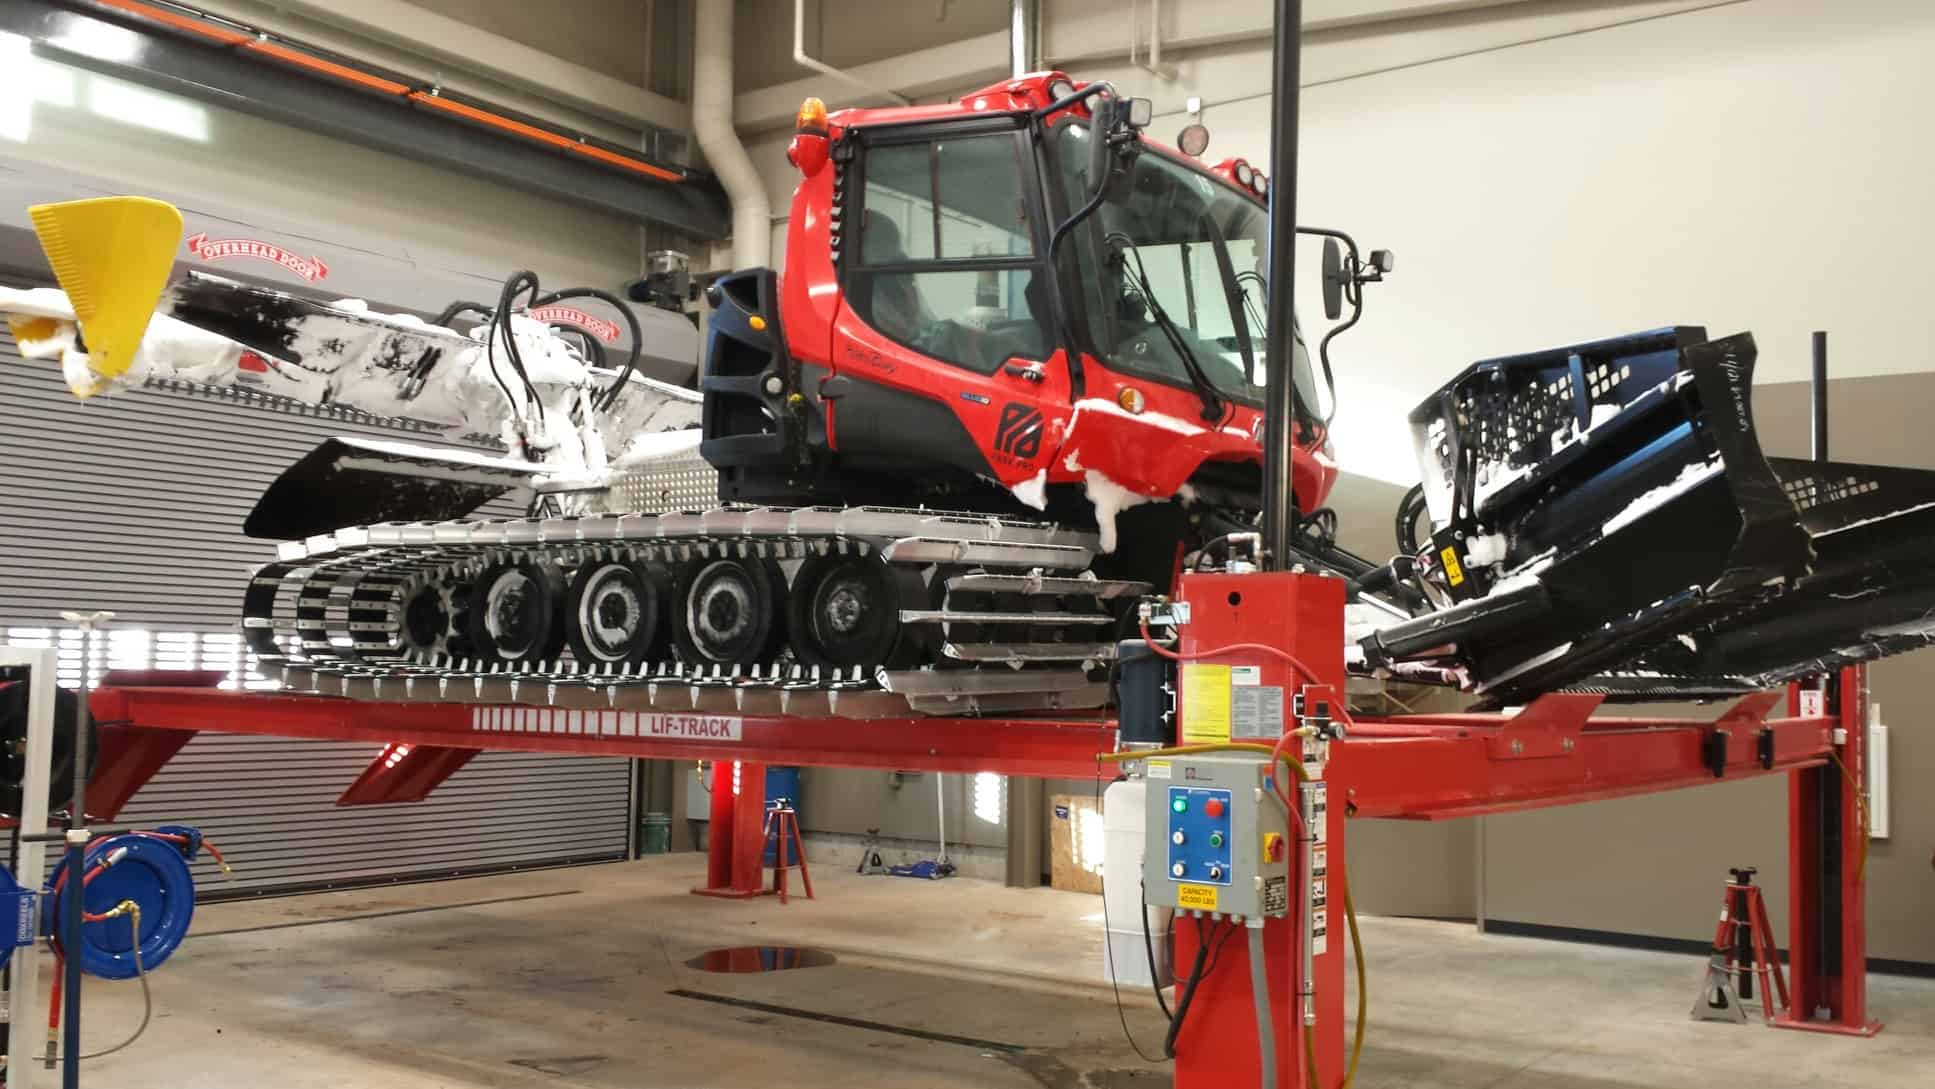 Imagine getting a look under this Pisten Bully, and how much easier it would be to work on it.